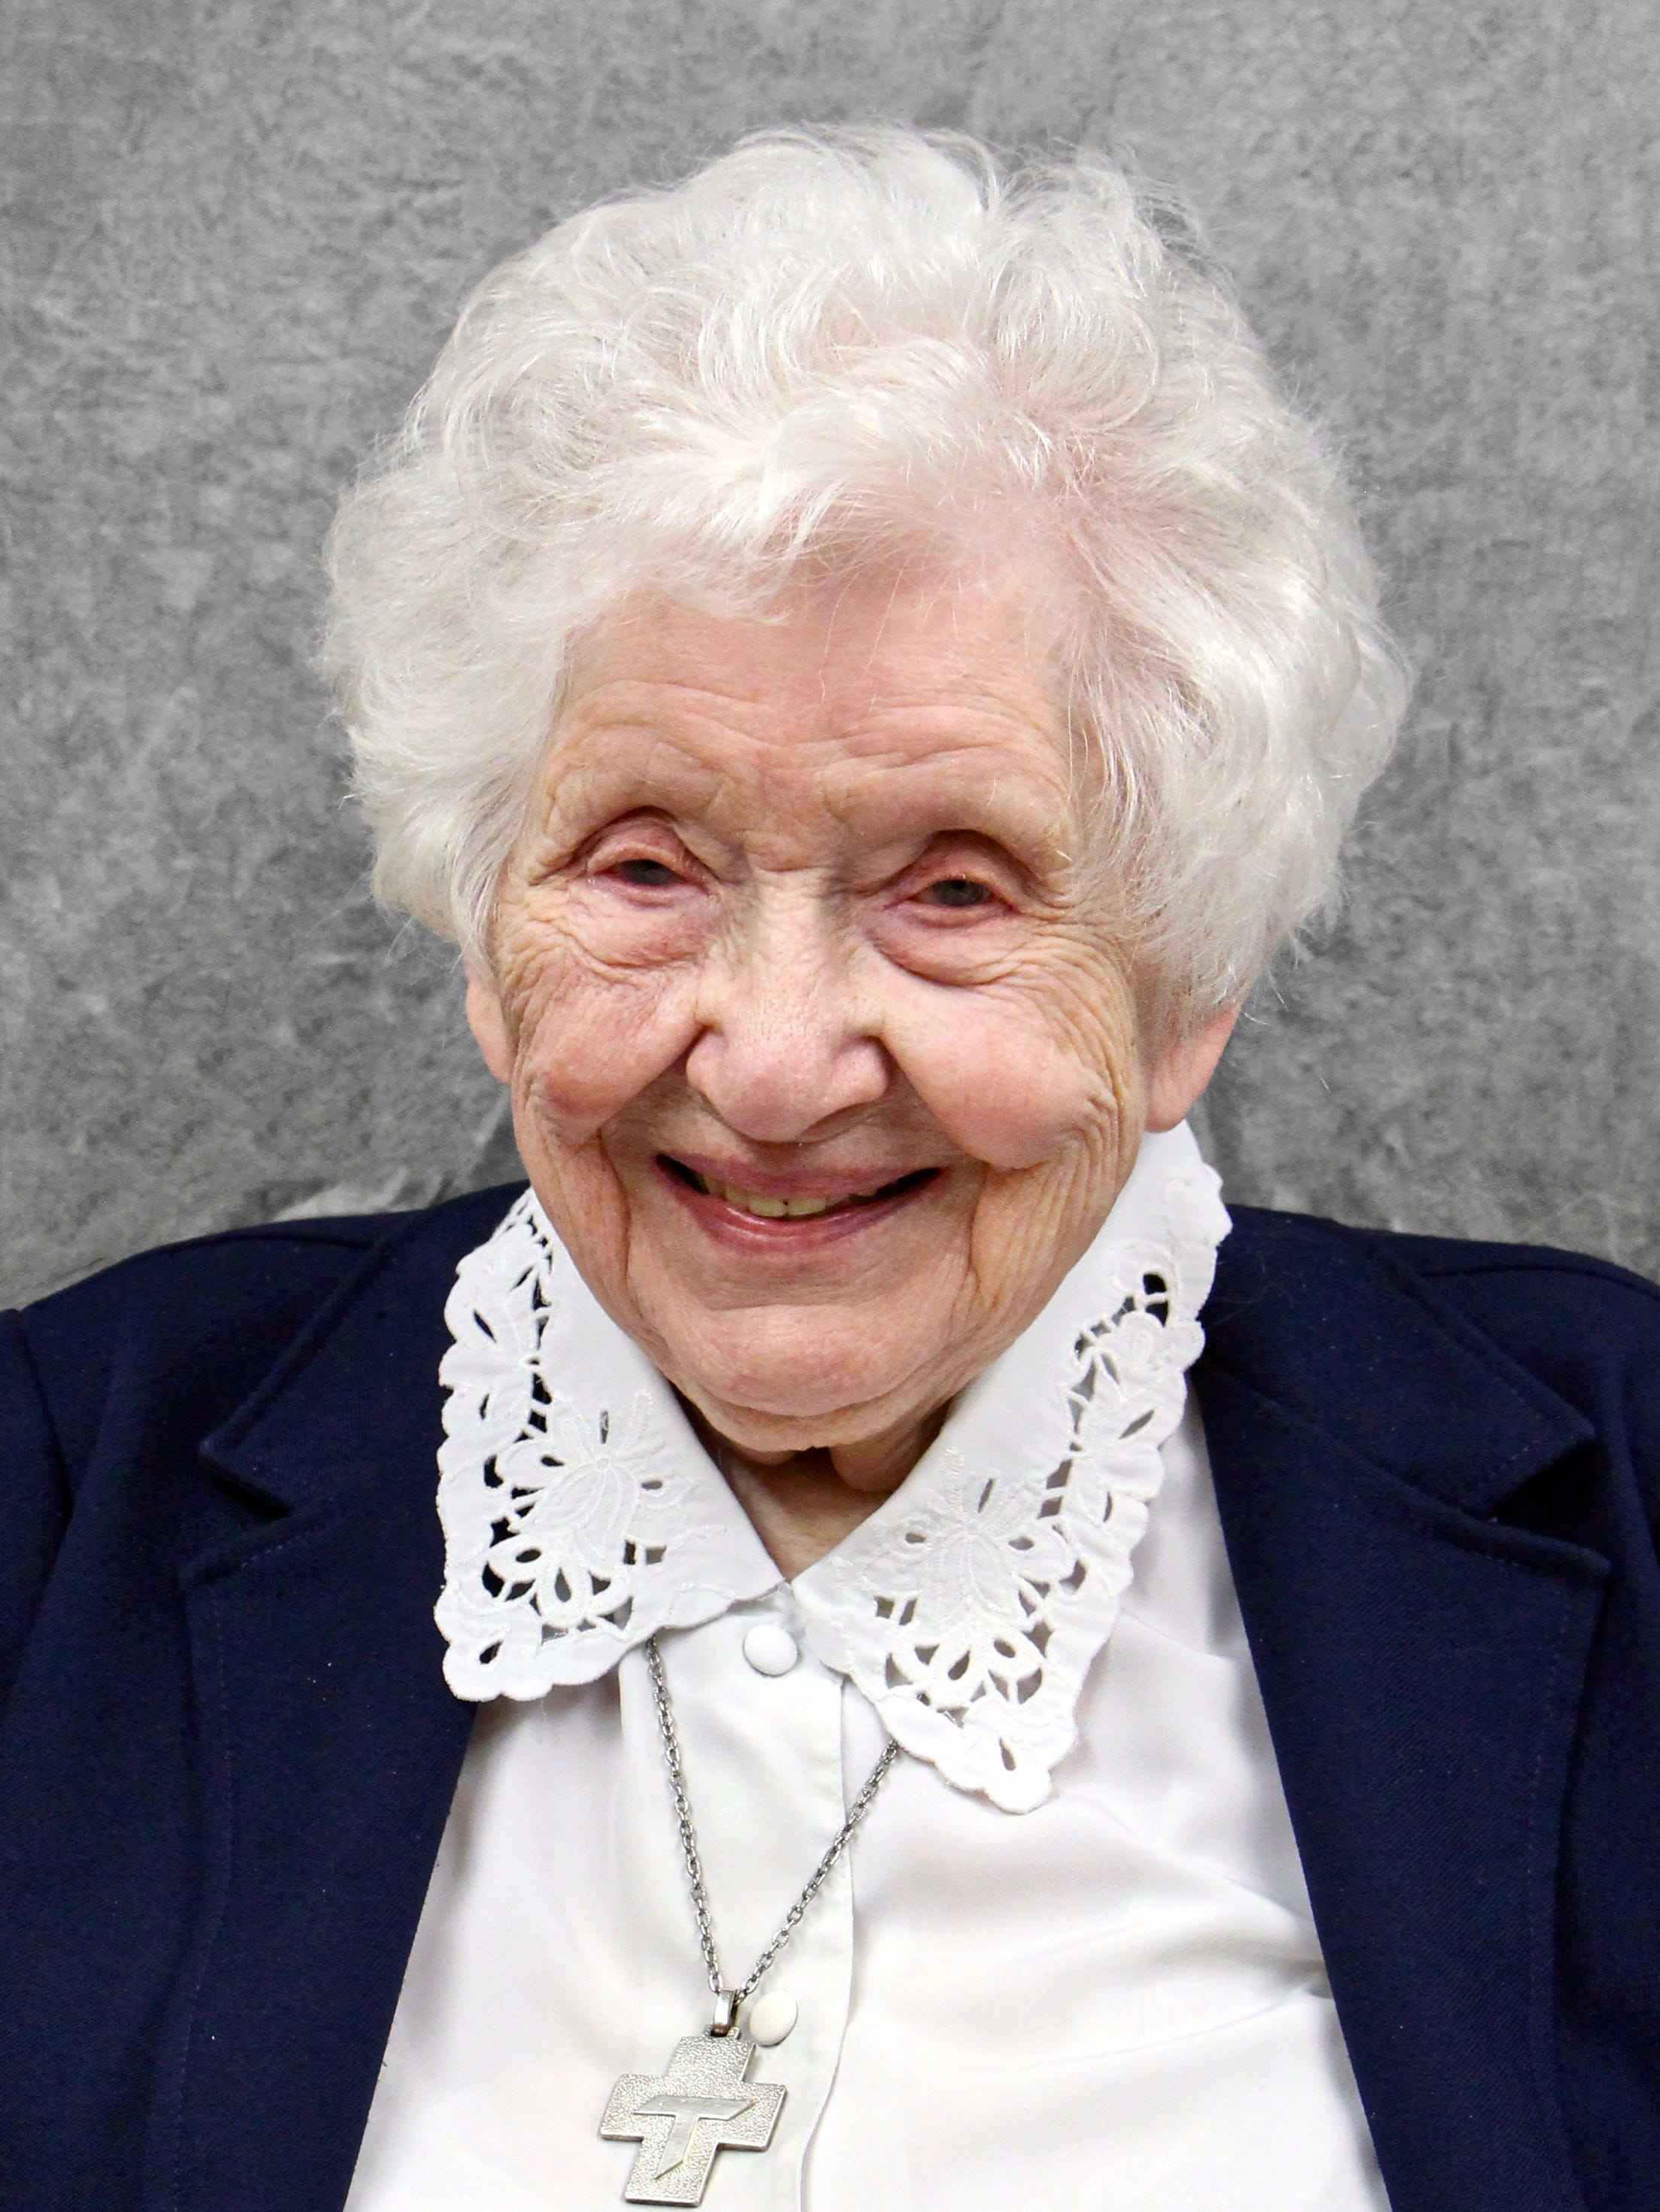 Sister Annelda Holtkamp died from COVID-19.